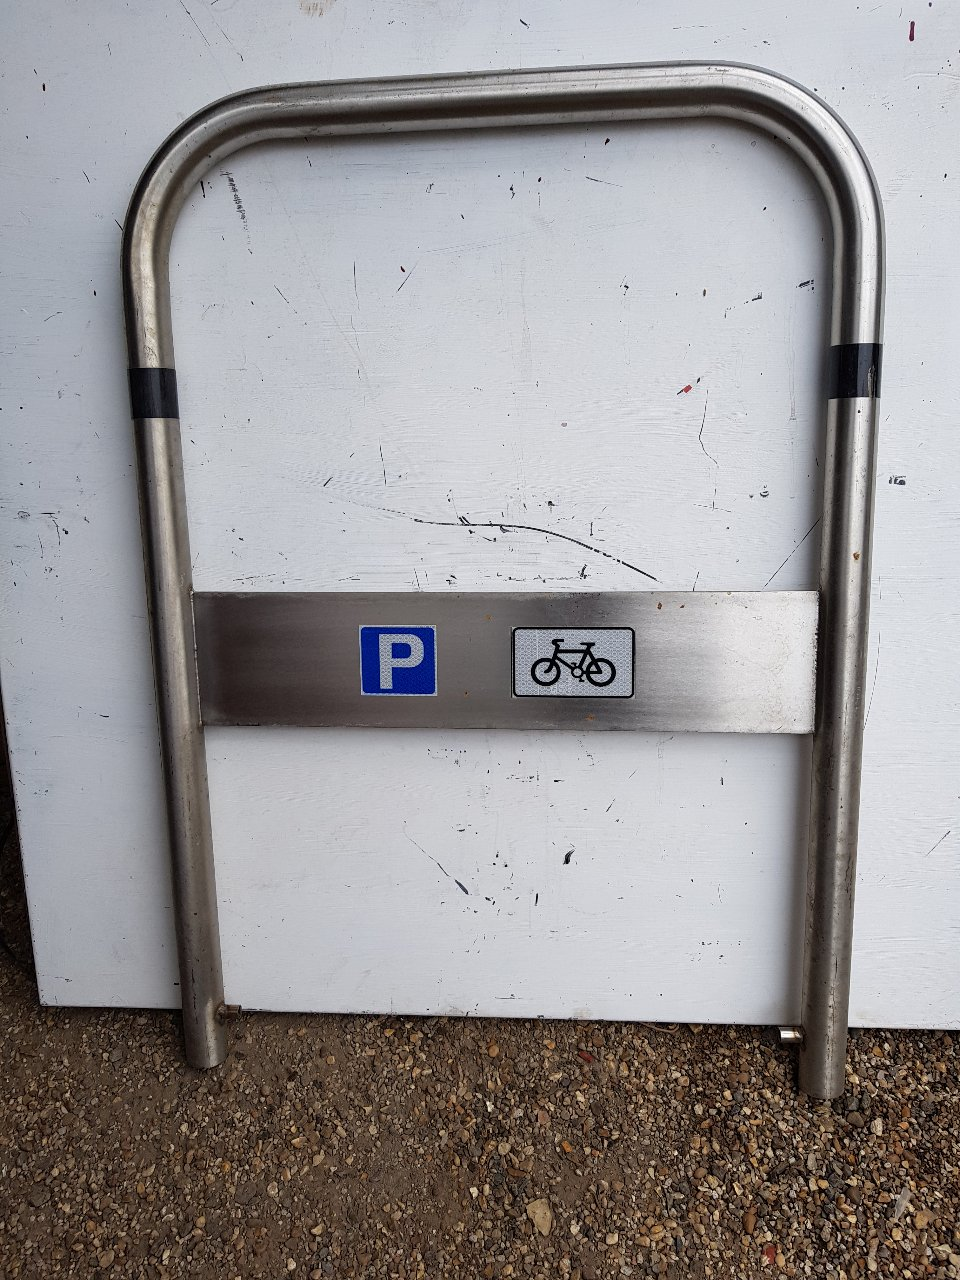 Stainless Steel Bike Racks